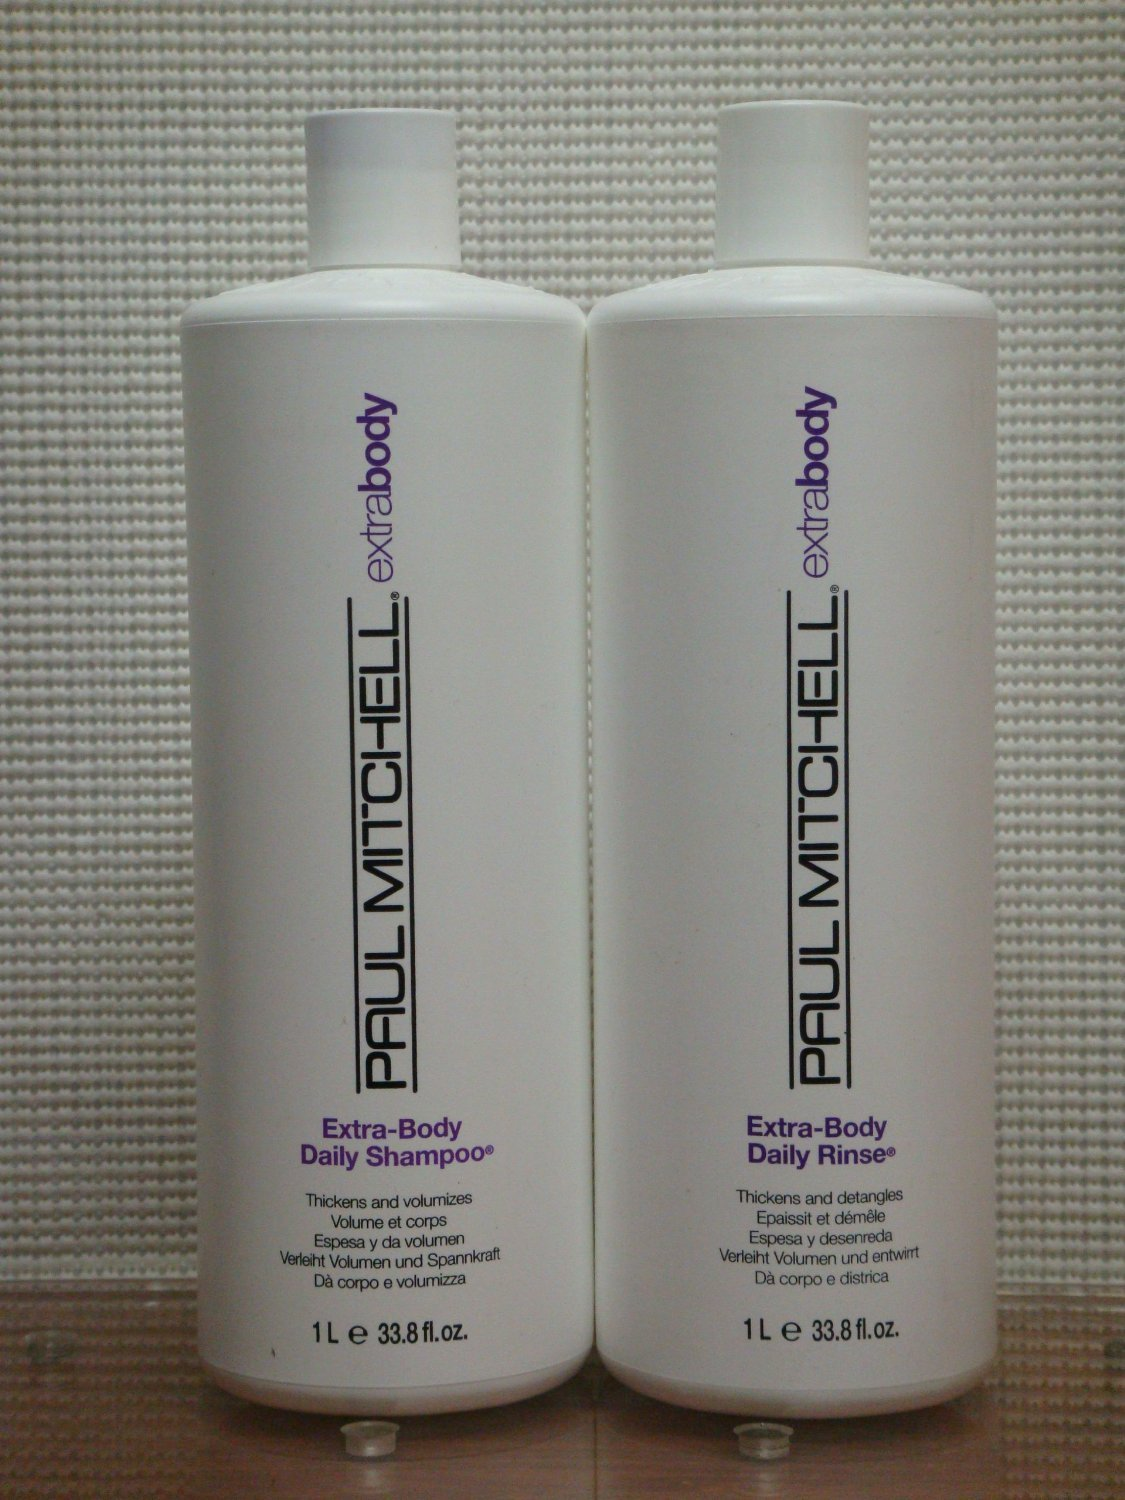 Duo Extra Body Daily Shampoo & Daily Rinse Liter by Paul Mitchell Liter Duo 3...